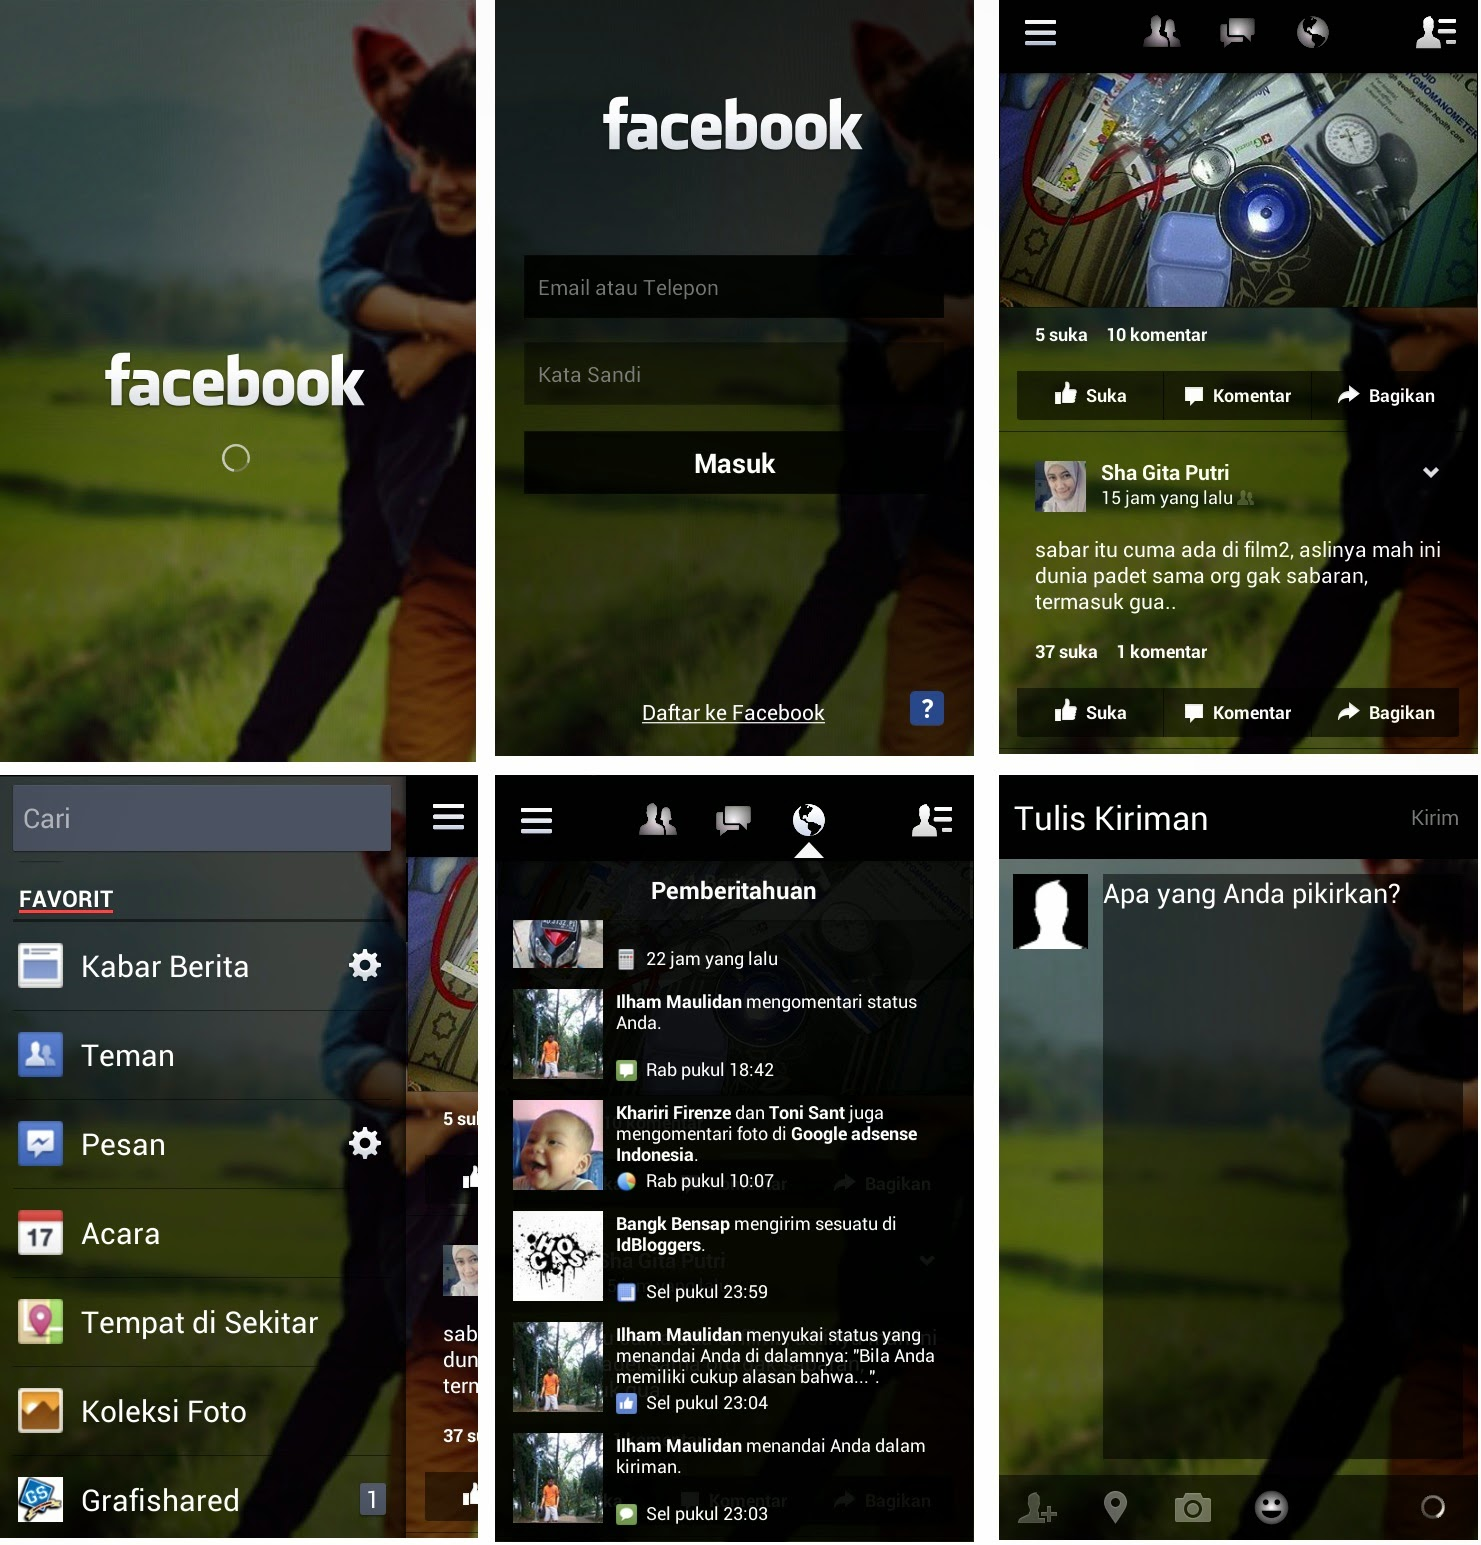 Download aplikasi Facebook Mod Transparan apk for Android